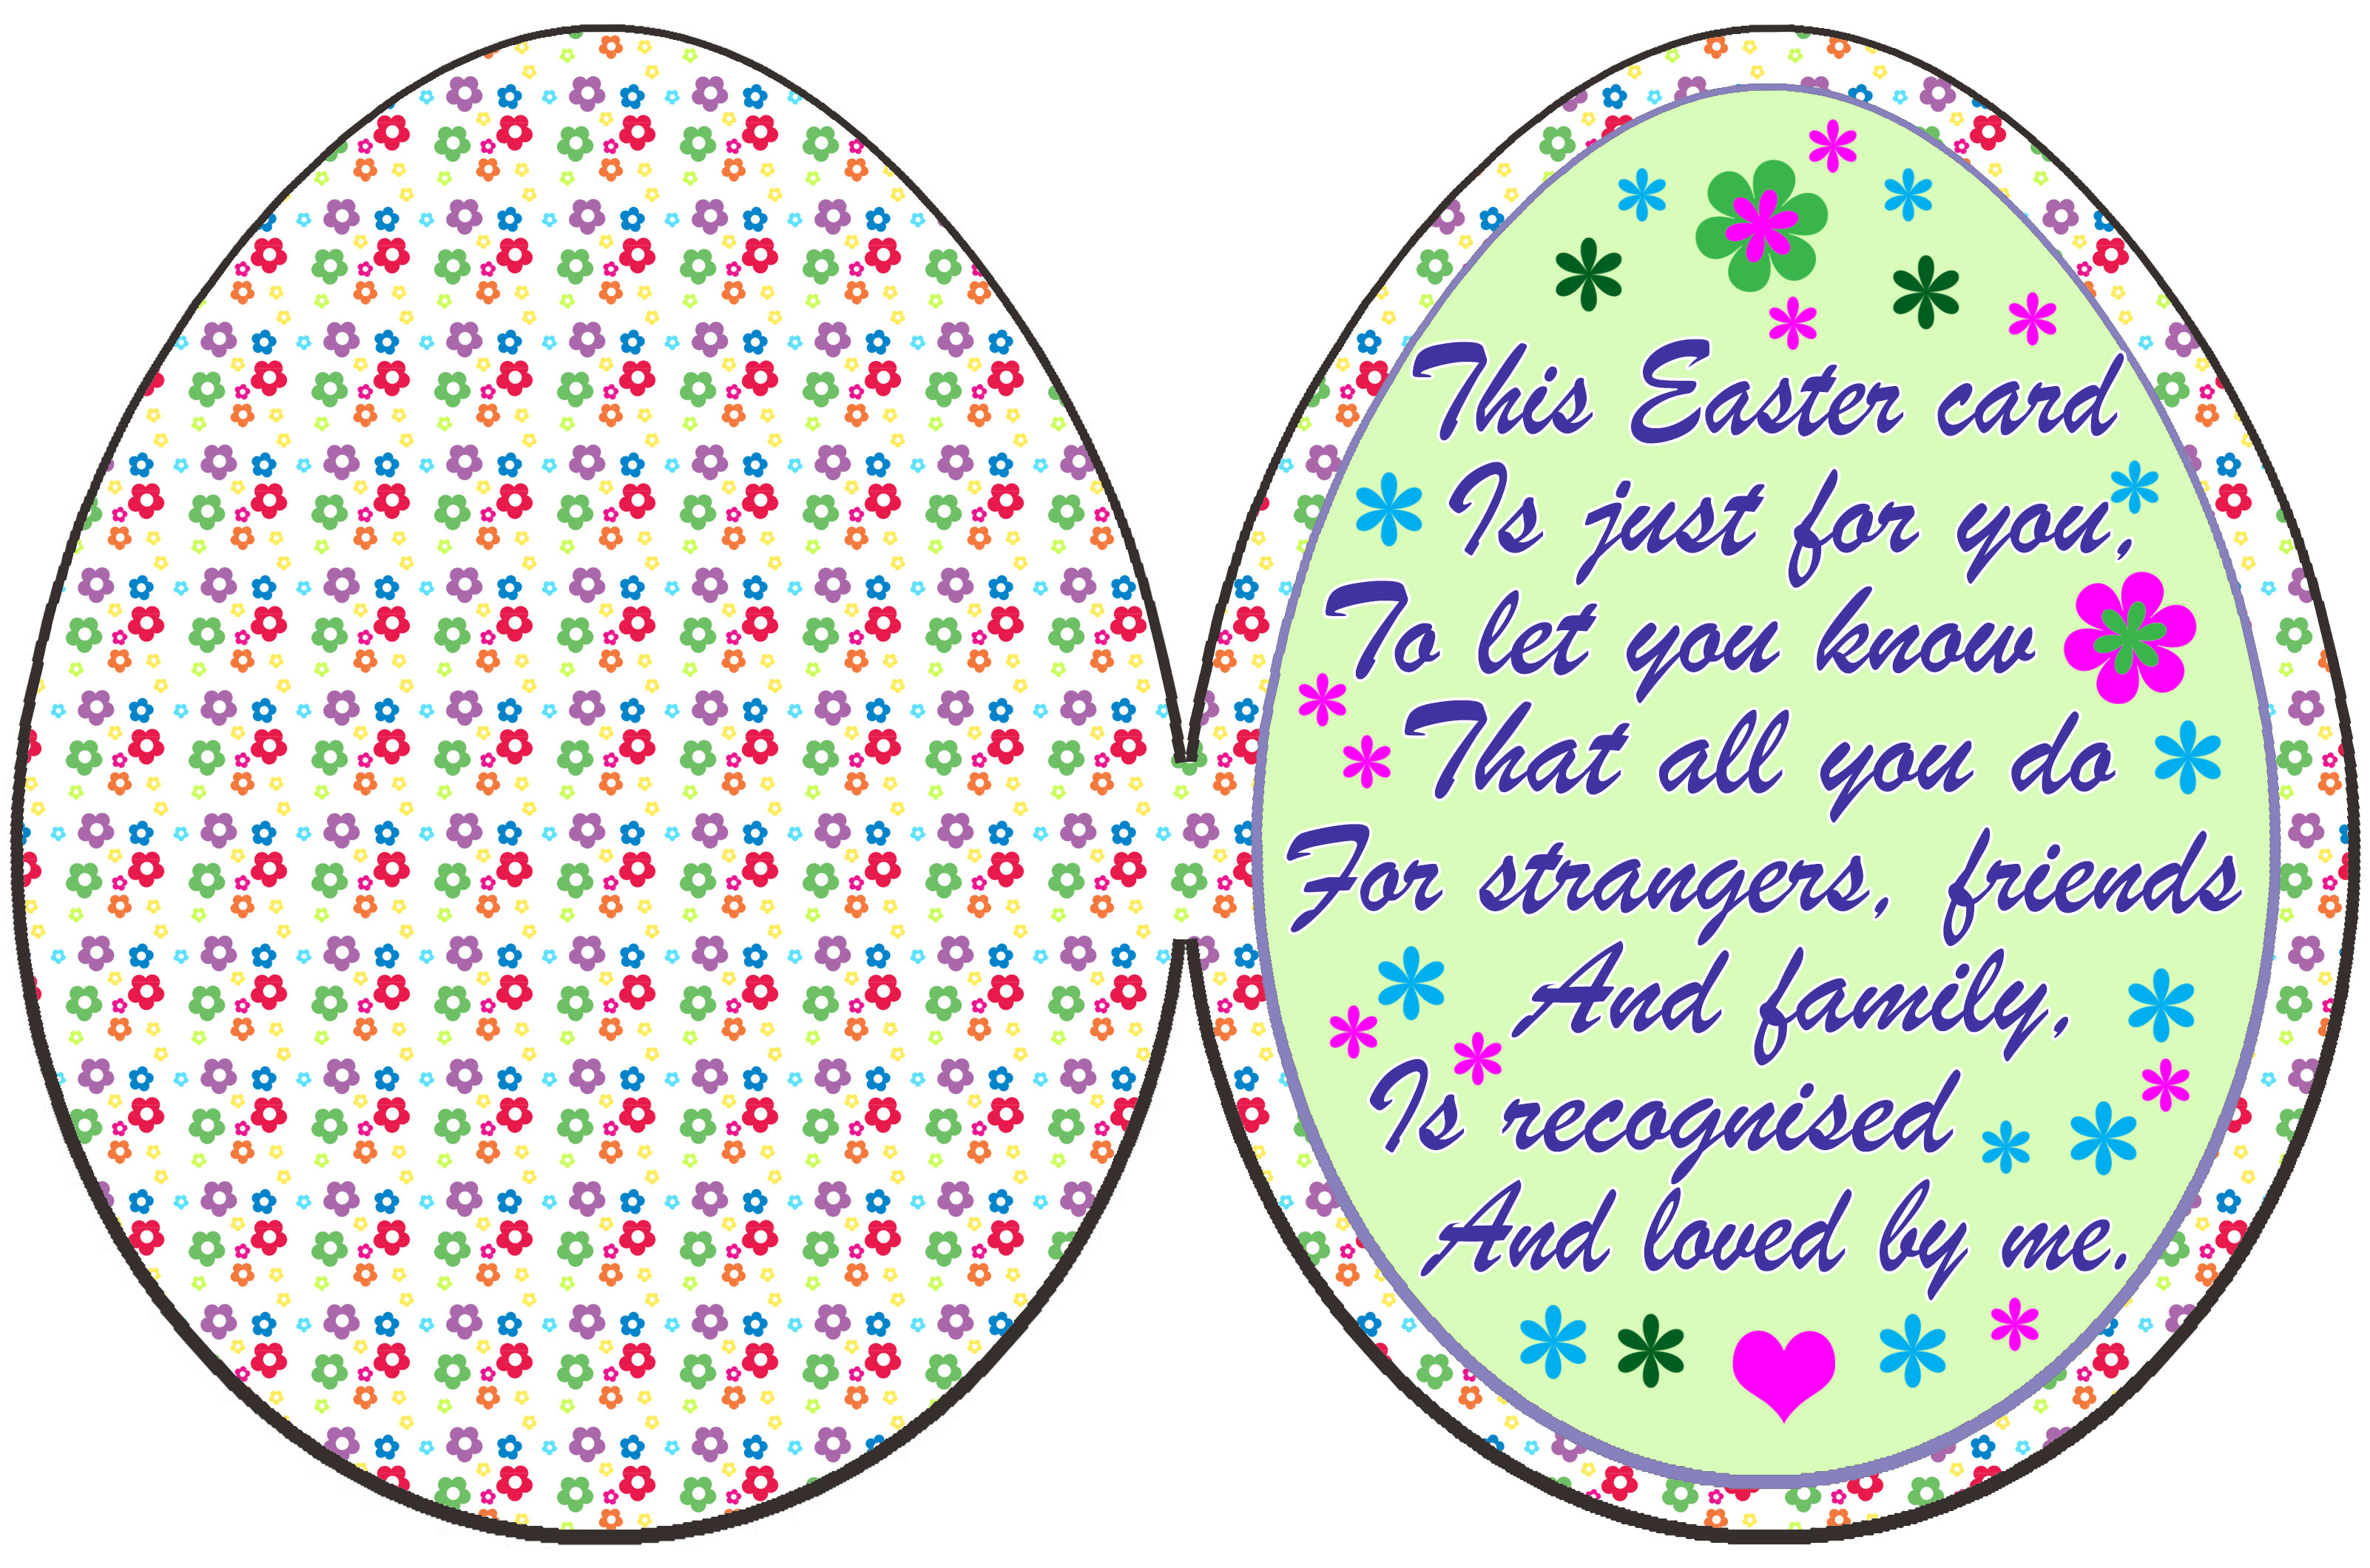 A printable Easter egg poem card